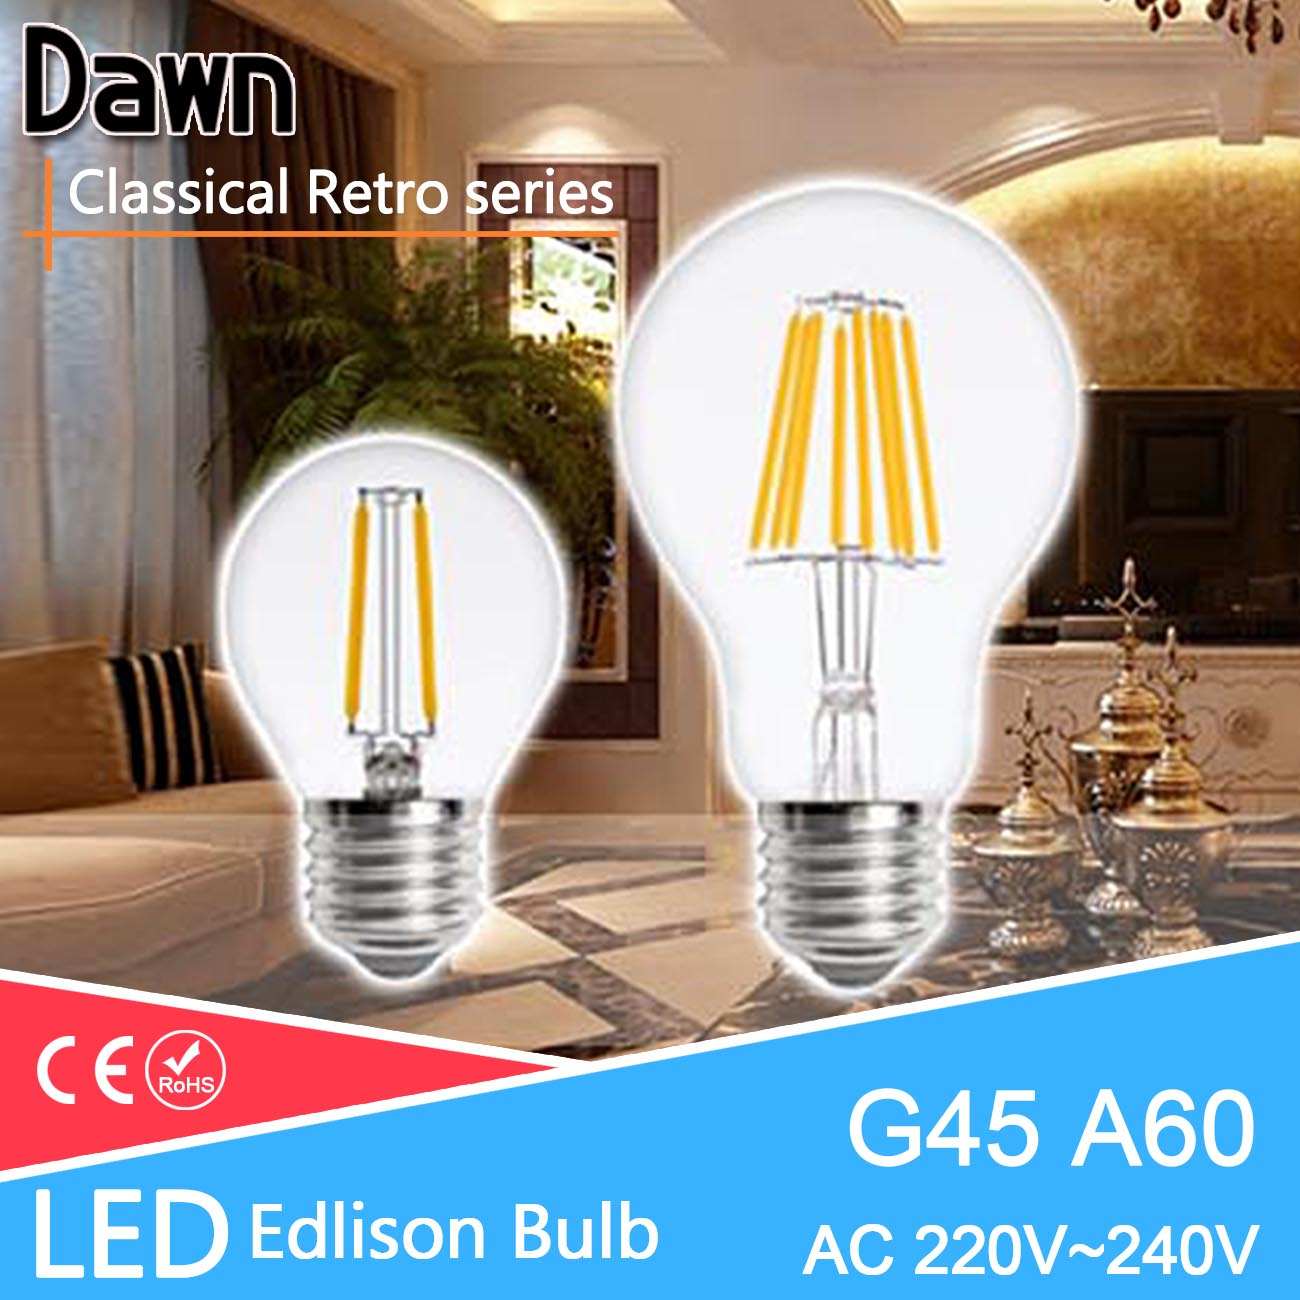 Classical Retro E27 LED Edison Bulb A60 G45 LED Filament Light 4W 8W 12W Lamp Replace 40w Incandescent Pendant Lampada Lighting